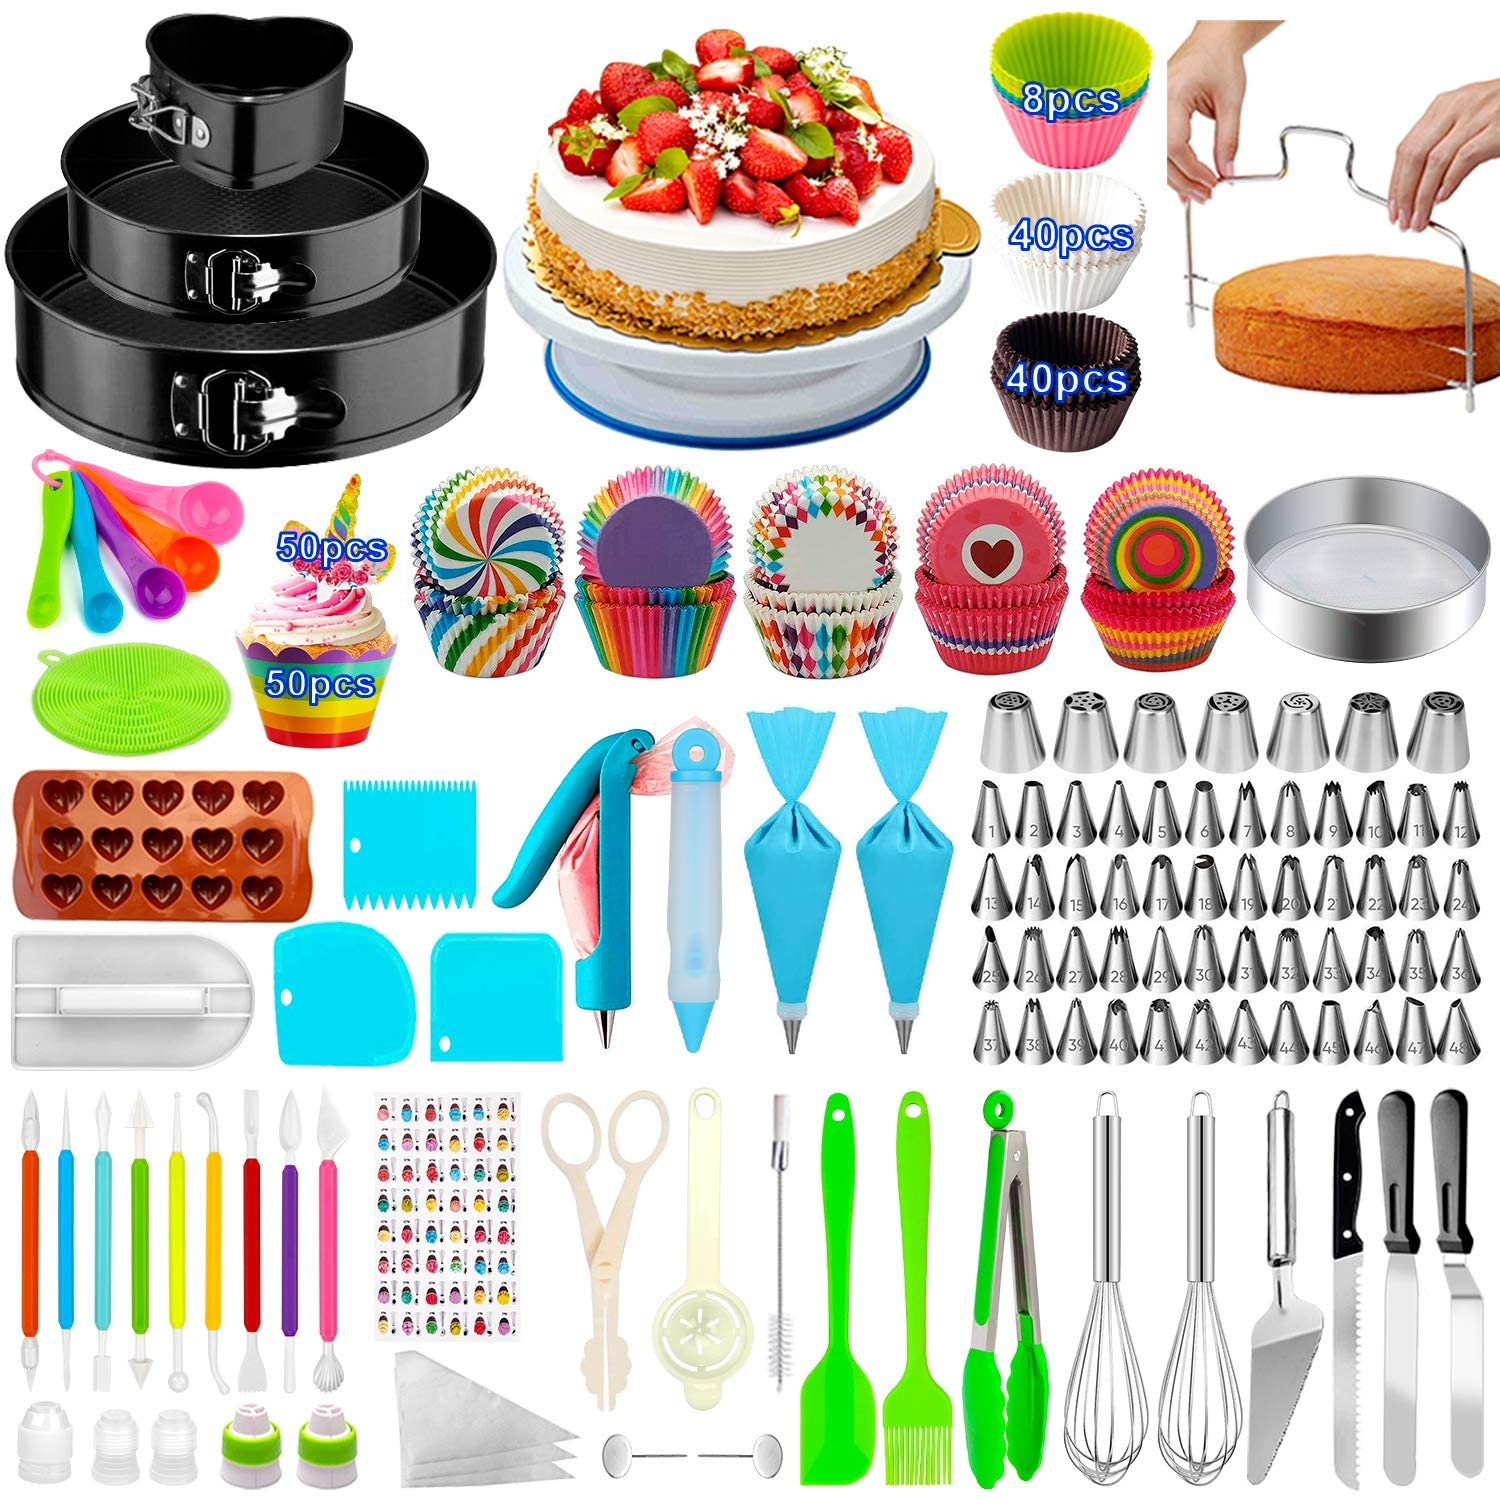 Cake Decorating Supplies 4 years warranty 493 PCS Packs Kit 3 Manufacturer direct delivery Spr